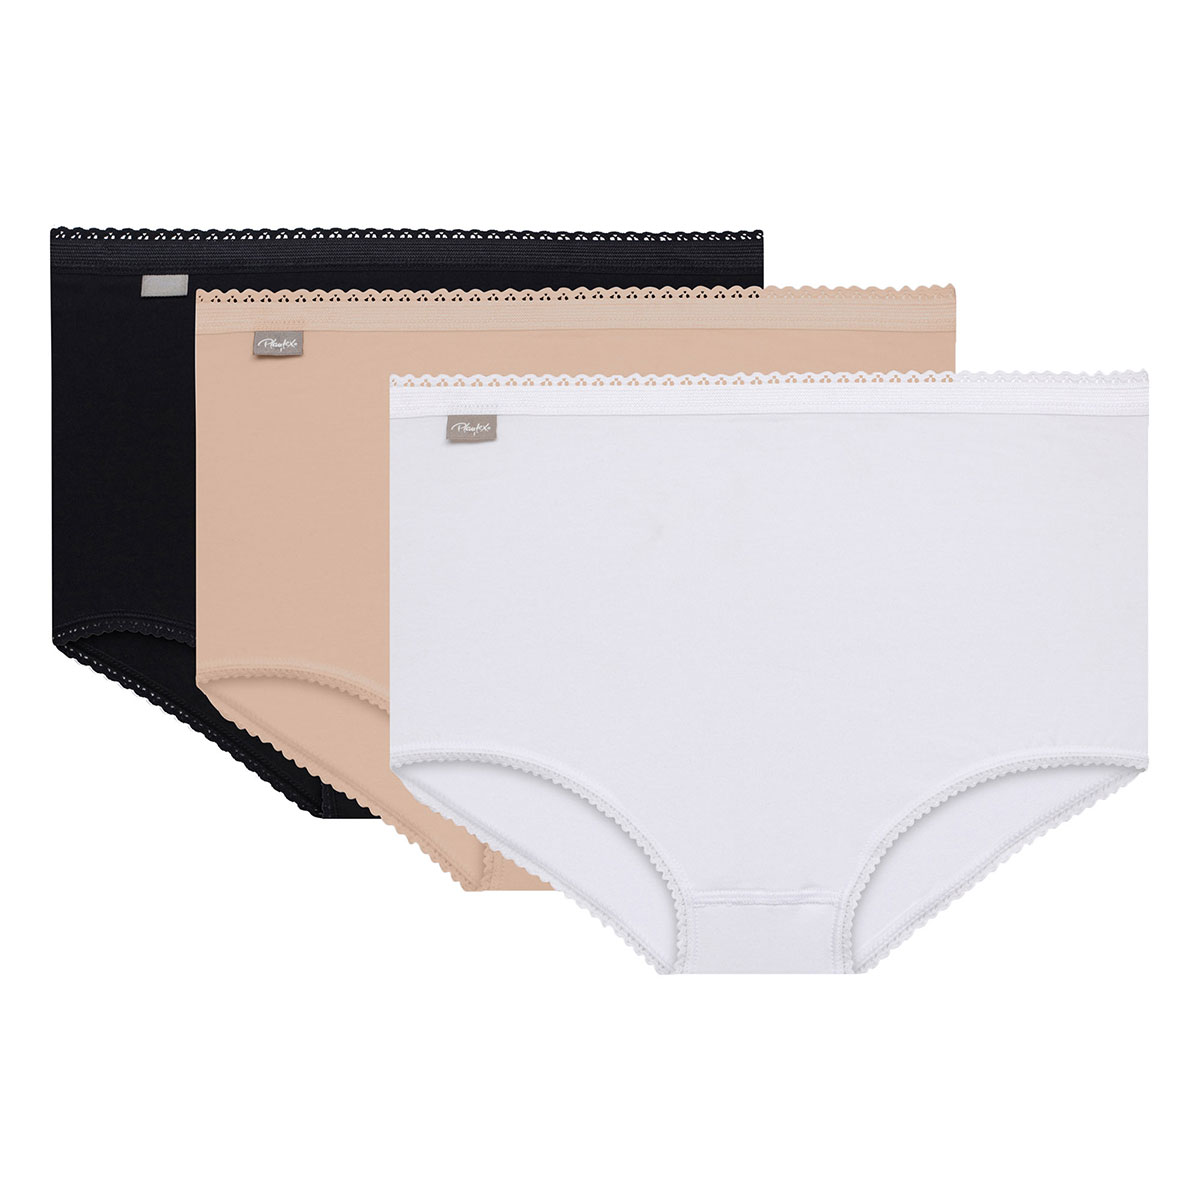 3 Pack Maxi briefs : white, black and beige - Cotton Stretch-PLAYTEX